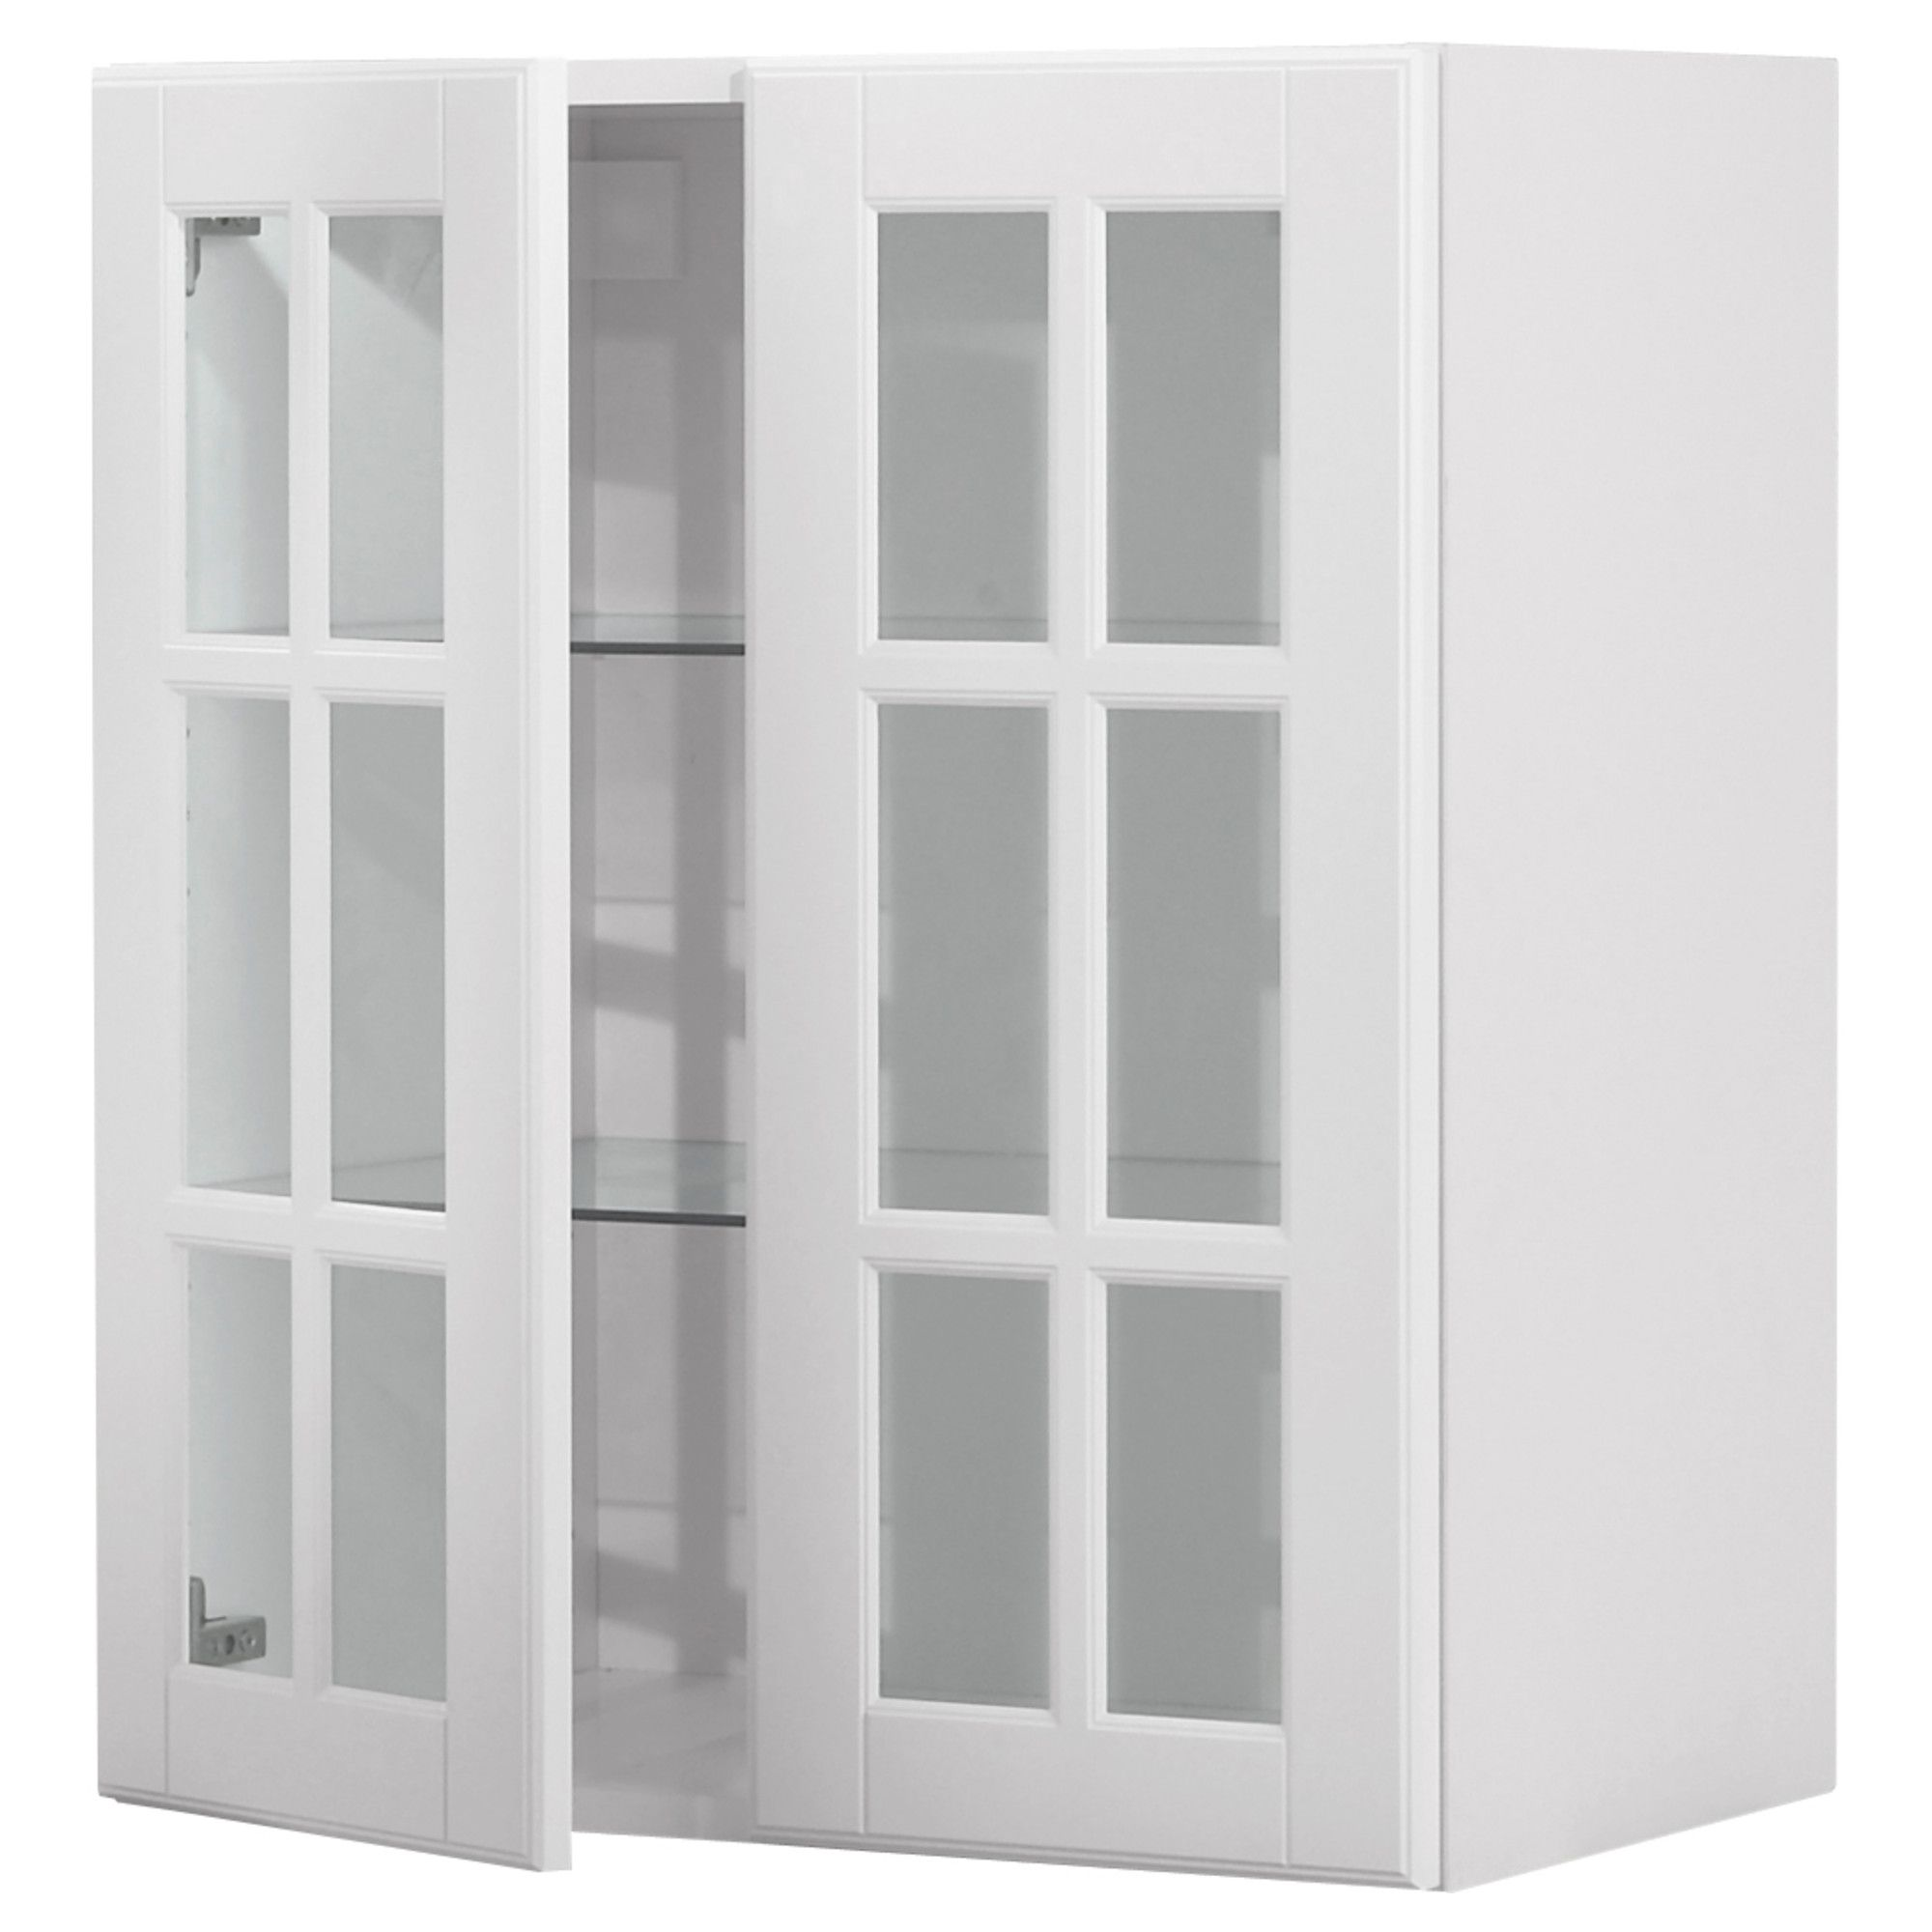 Ikea Faktum Lidingö Double Sized Akurum Wall Cabinet With 2 Glass Doors Birch